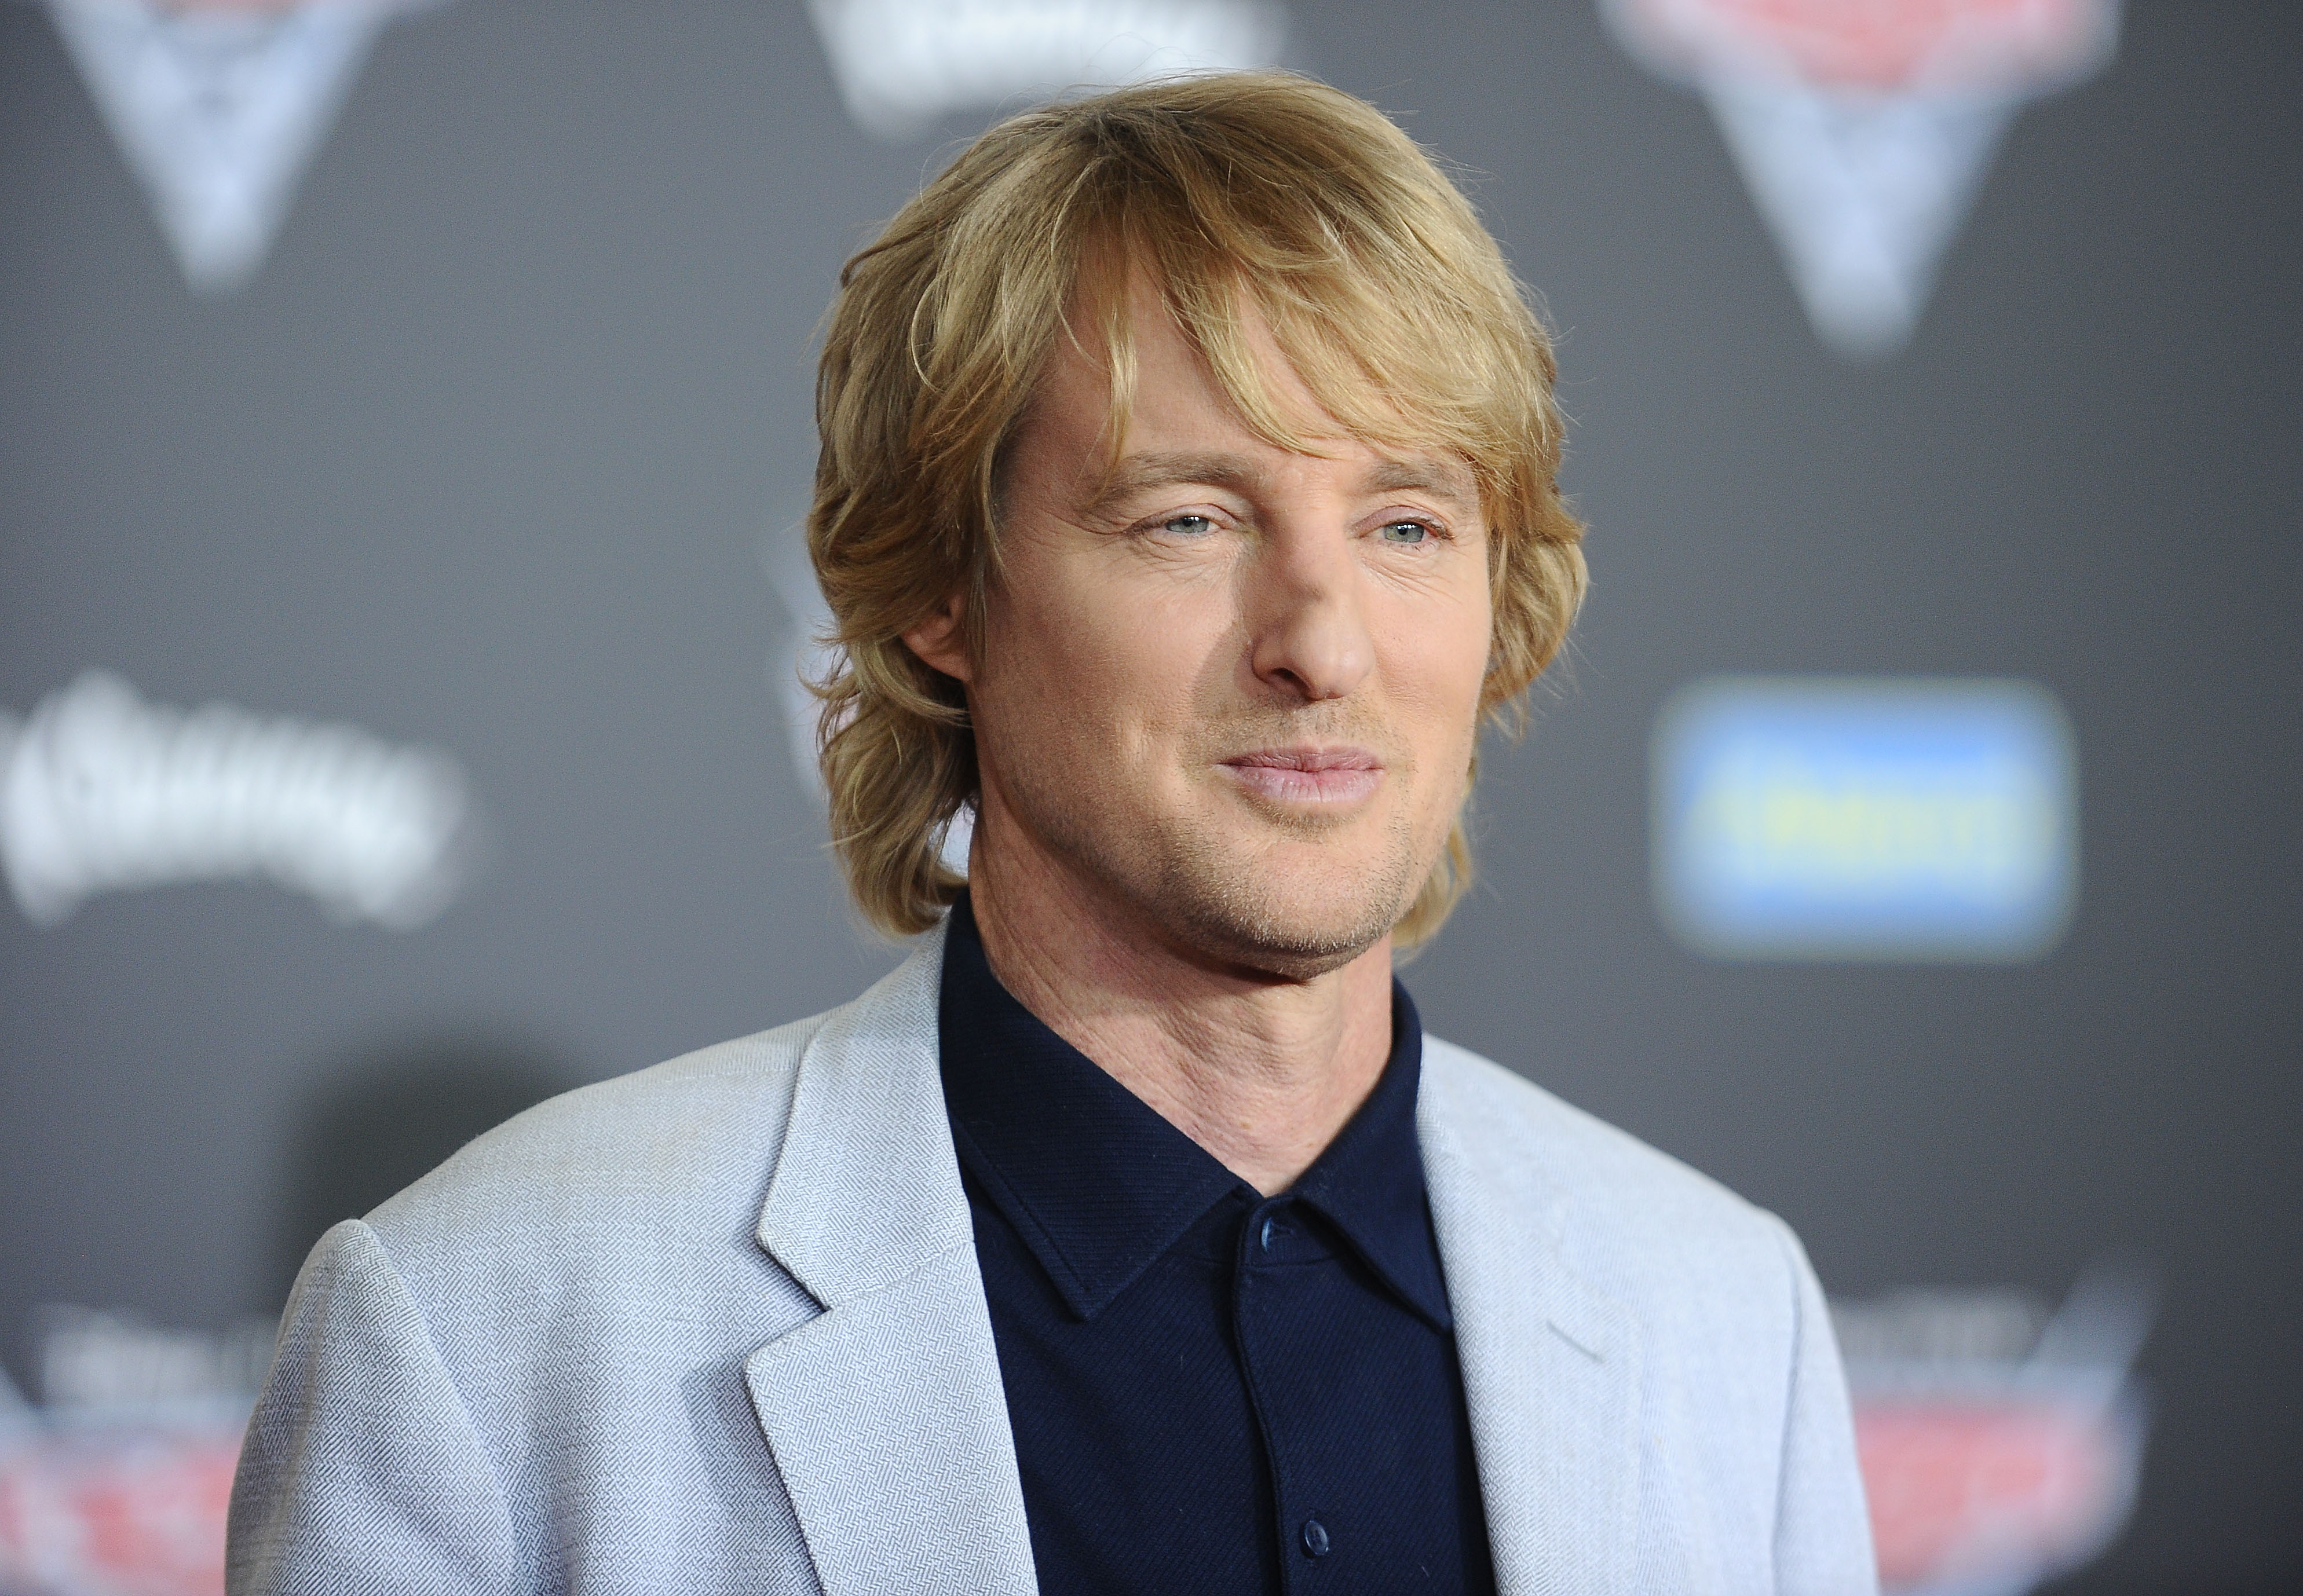 """Owen Wilson pictured at the """"Cars 3"""" premiere in Anaheim, California in 2017. 